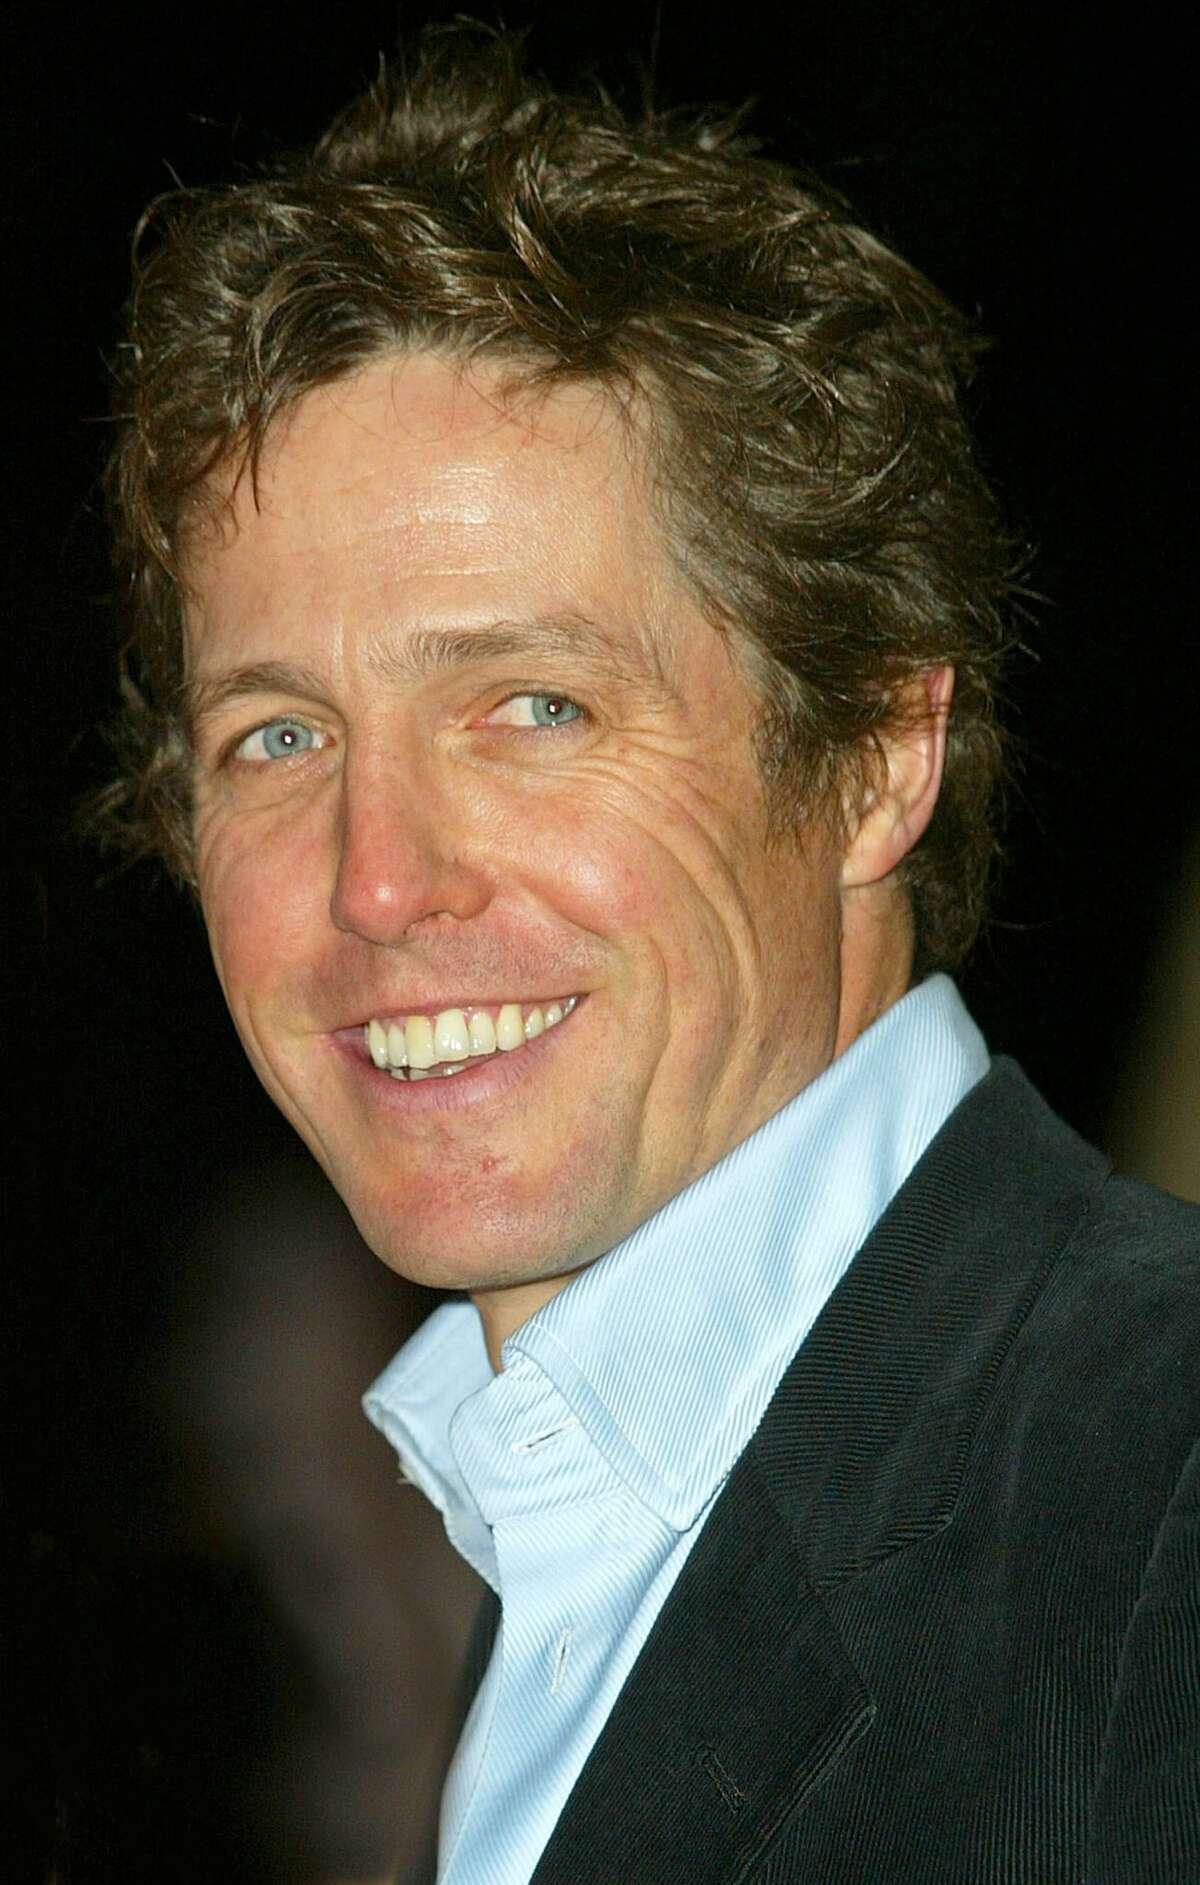 Hugh Grant during the